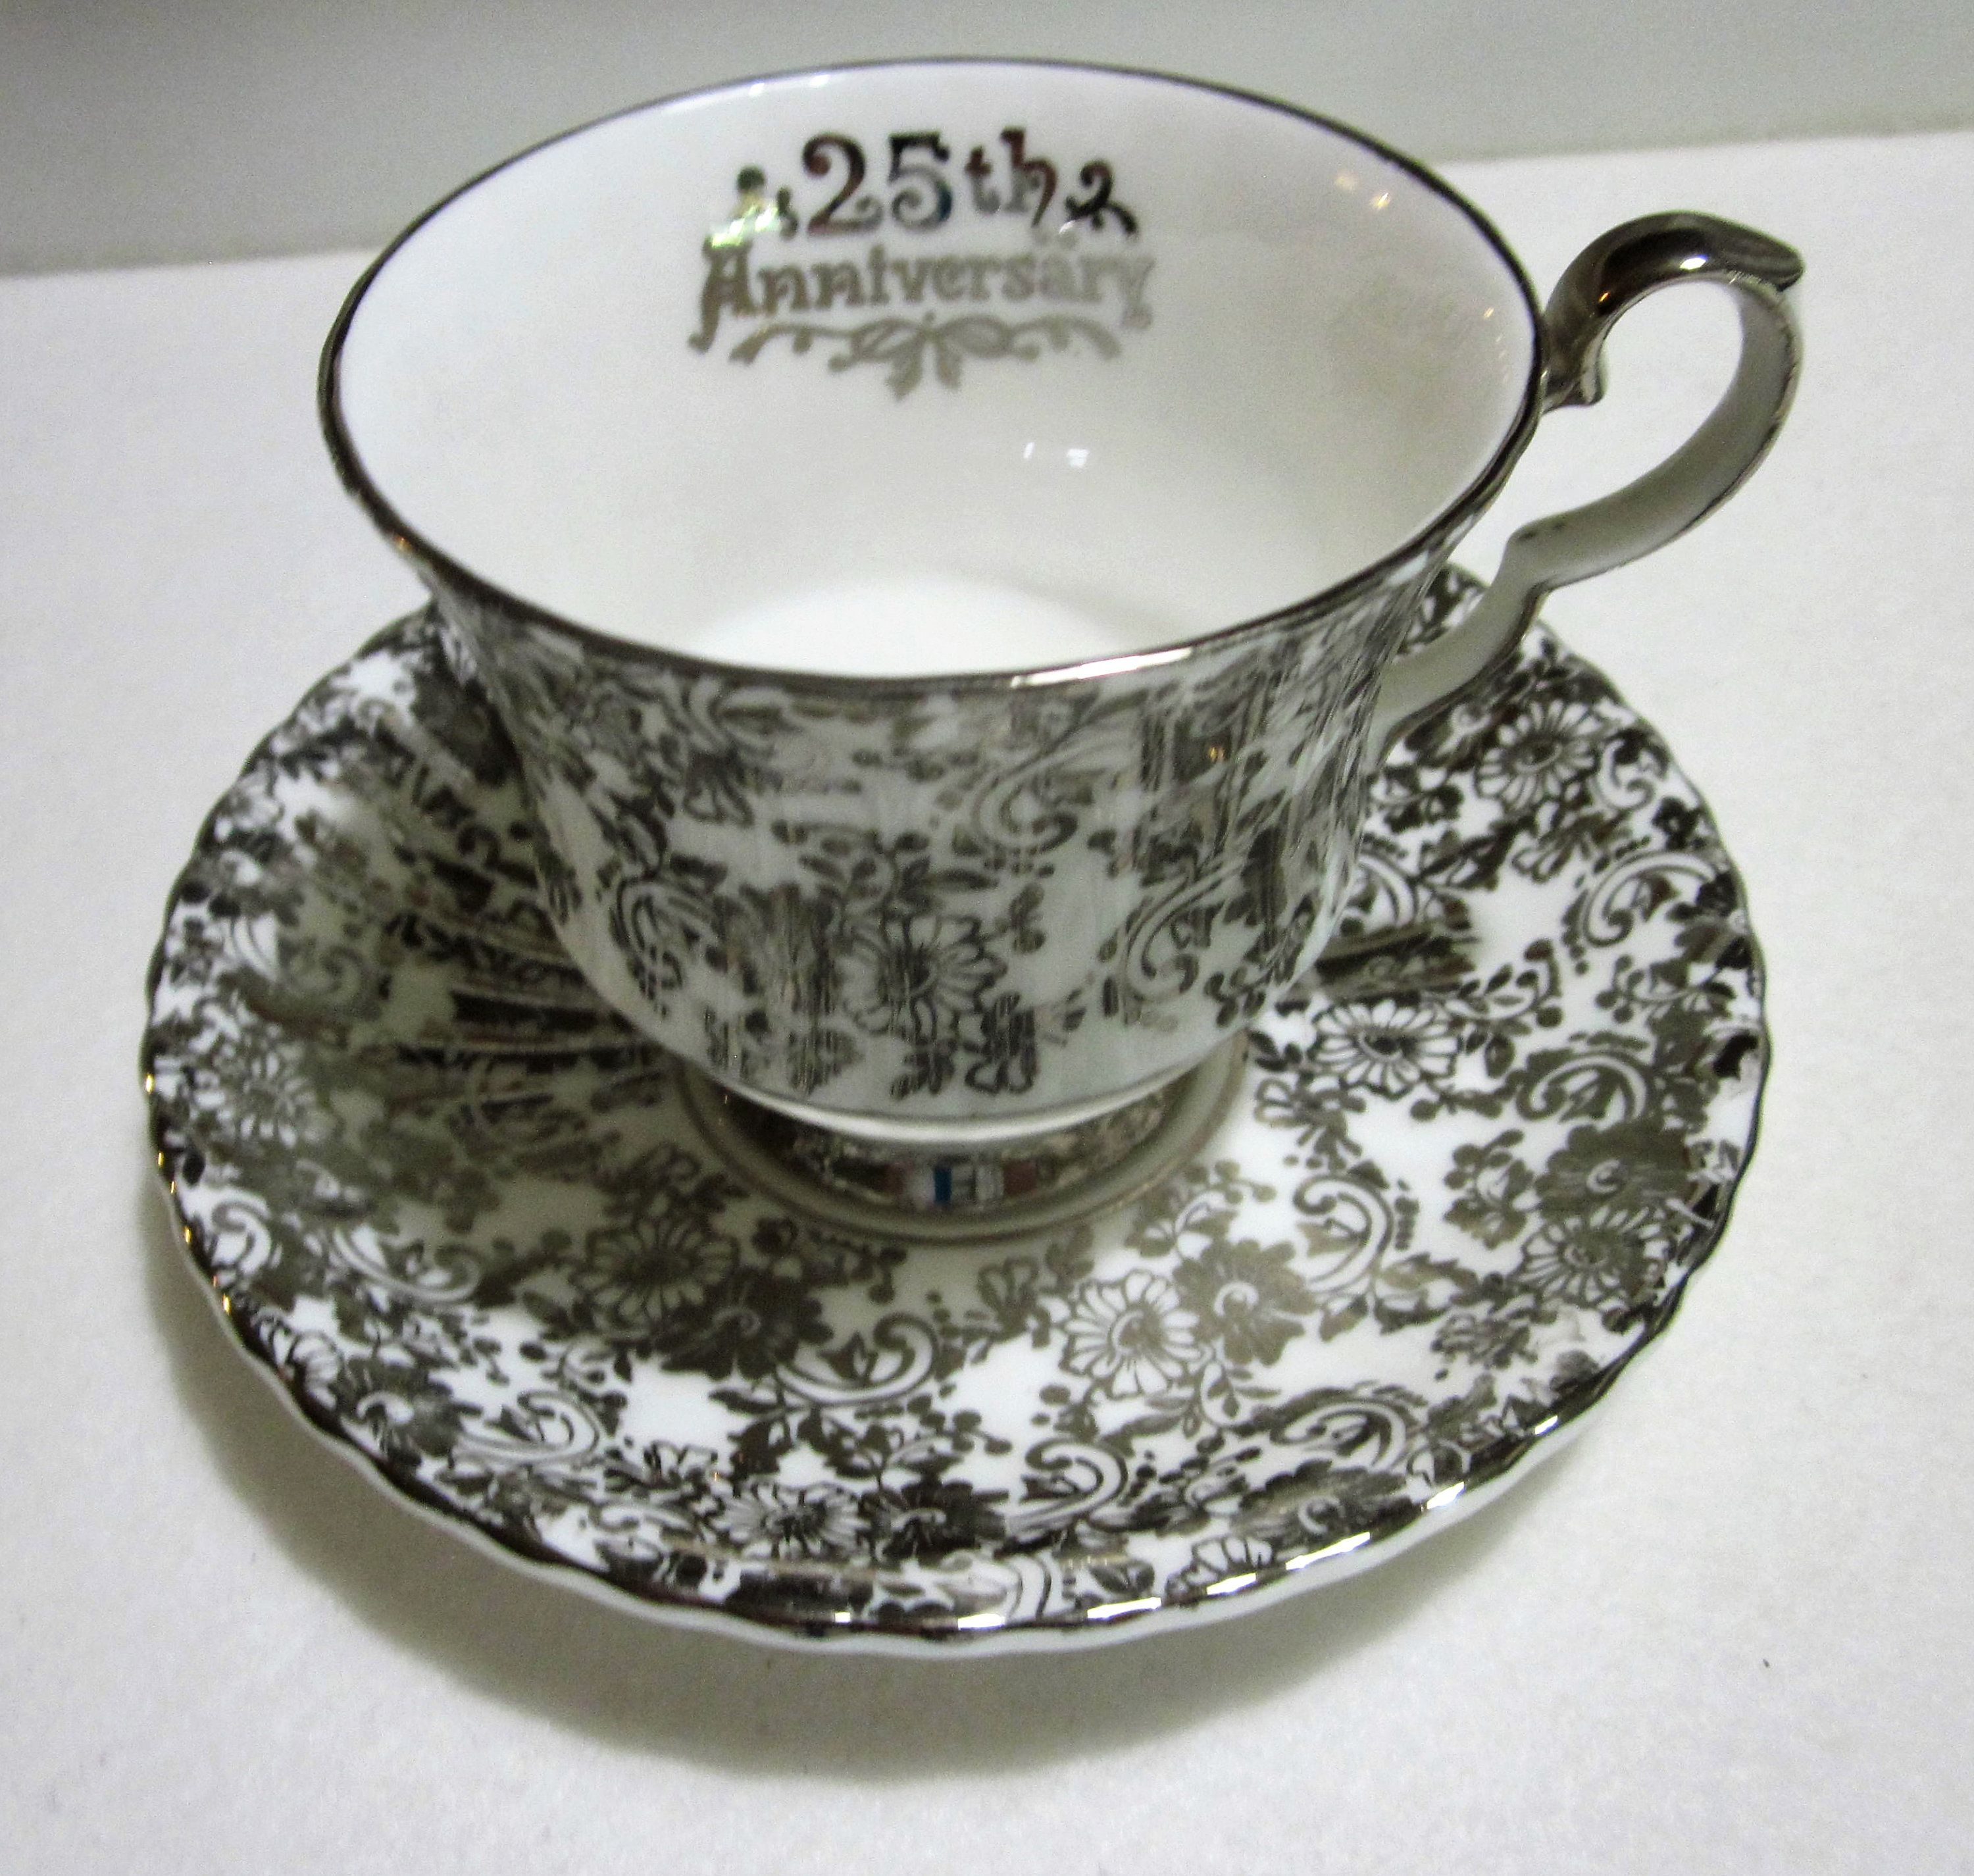 25th anniversary teacup silver anniversary silver teacup